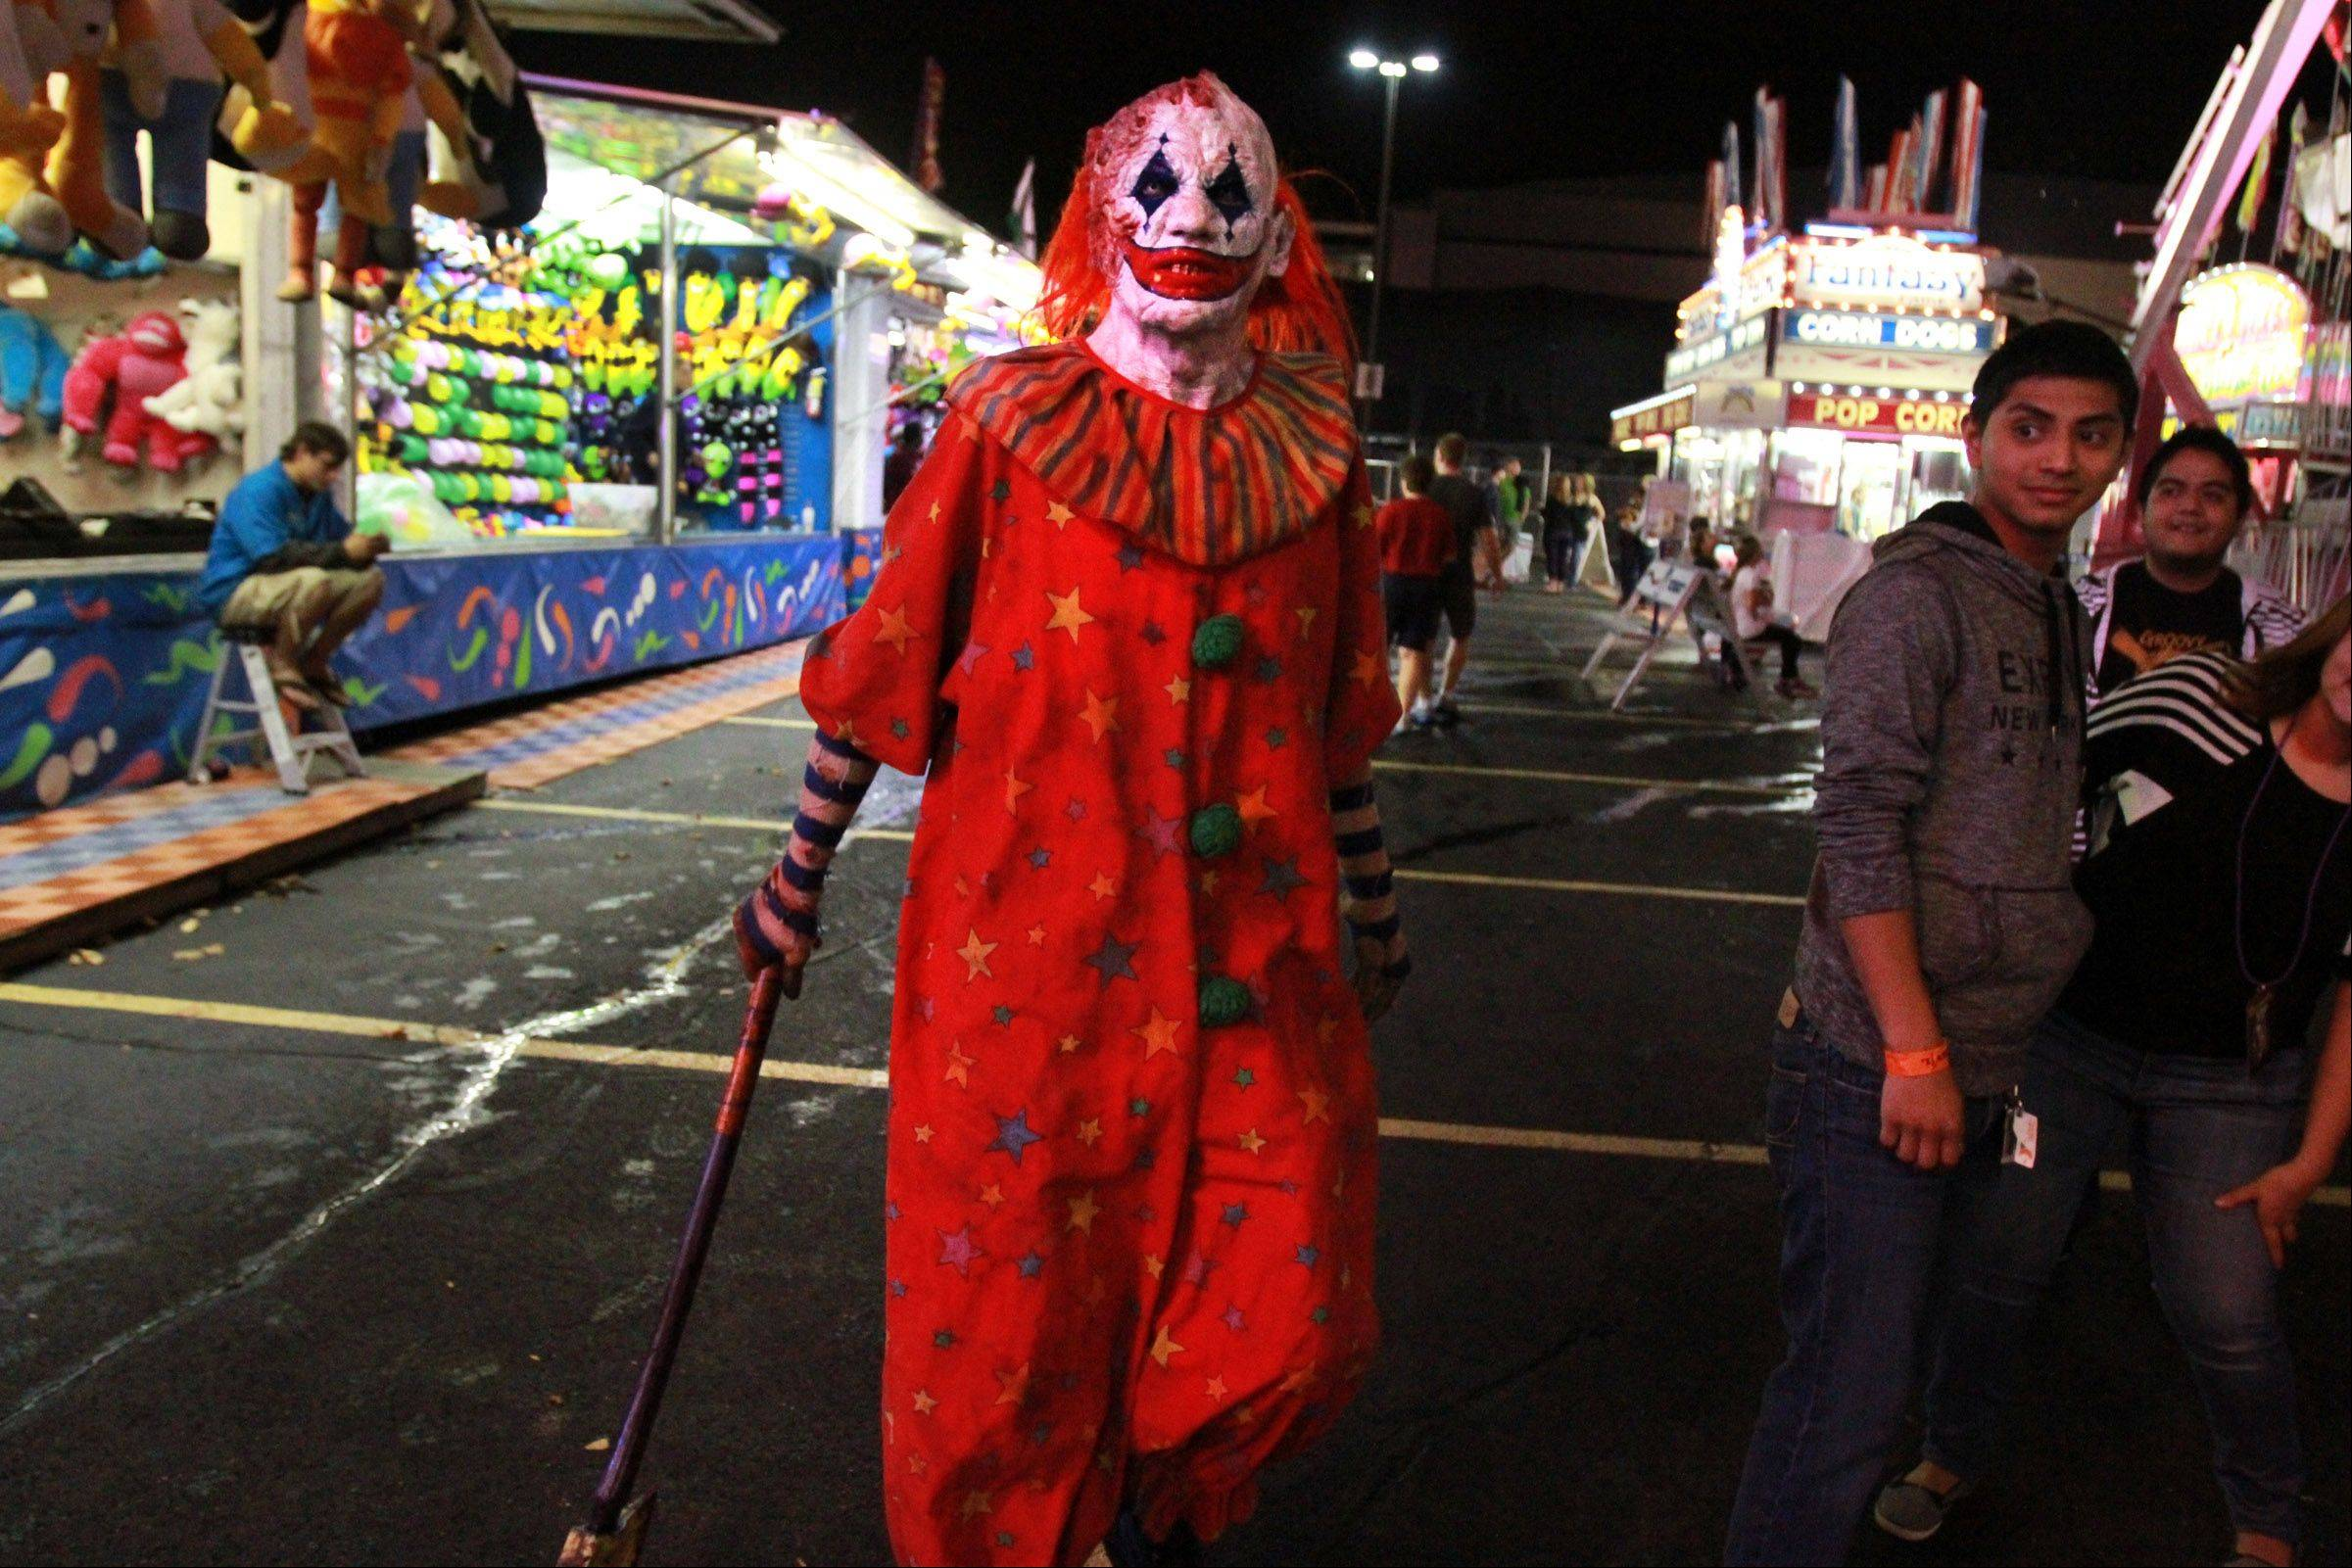 CarnEvil the clown (played by James Caraway of Rockford) scares visitors to the new haunted attraction that shares his name. It's at the Sears Centre in Hoffman Estates.